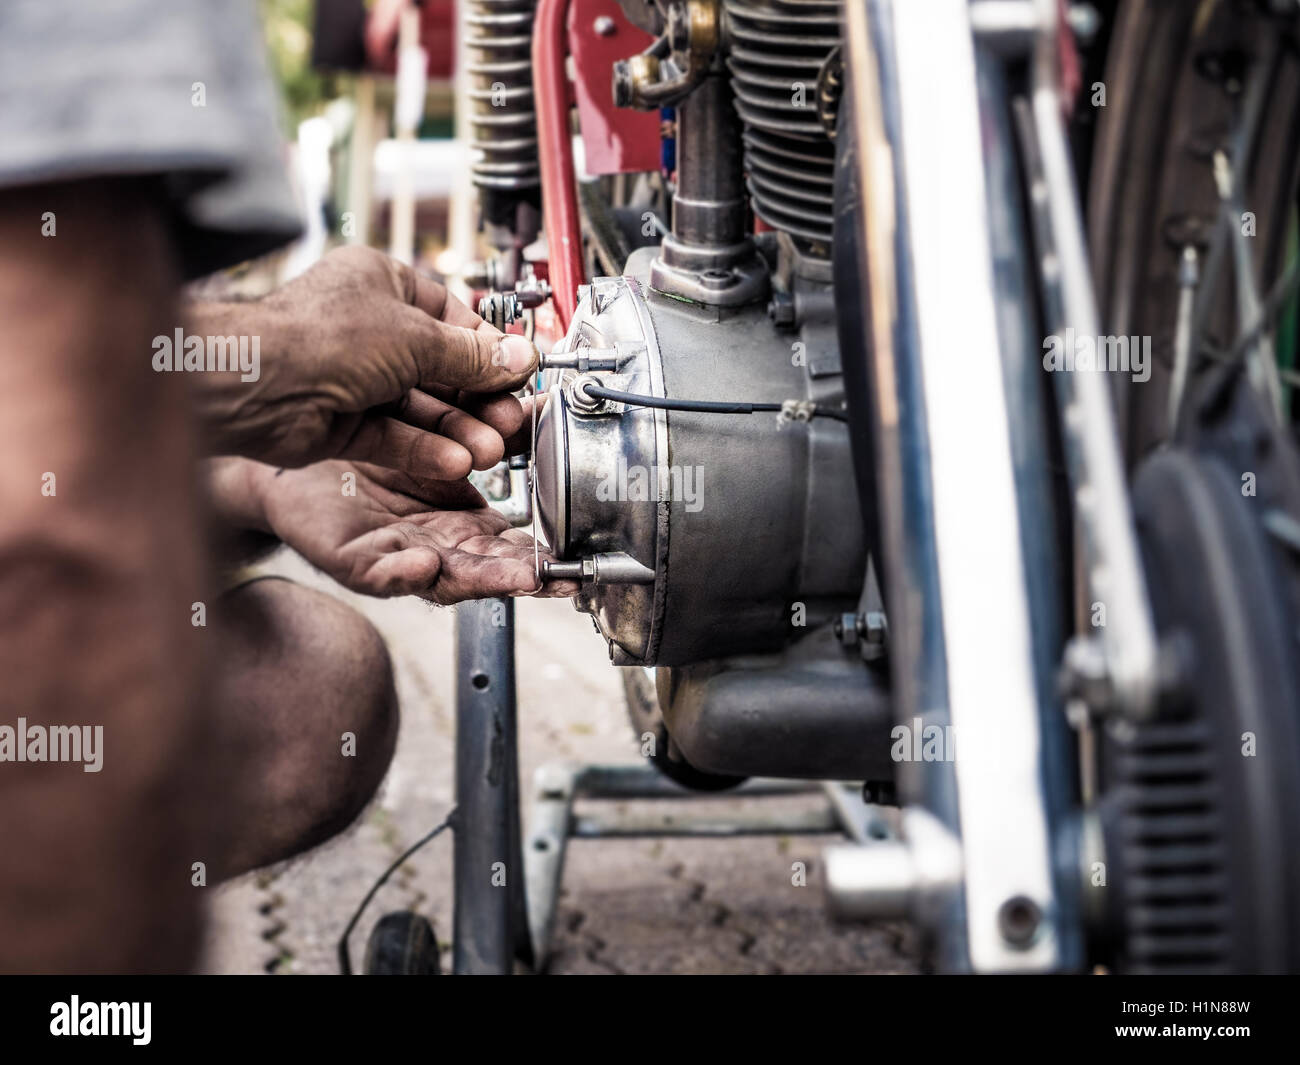 Mechanic with dirty hands fixing a screw on a old bike engine, intentional blur and vivid colors. - Stock Image